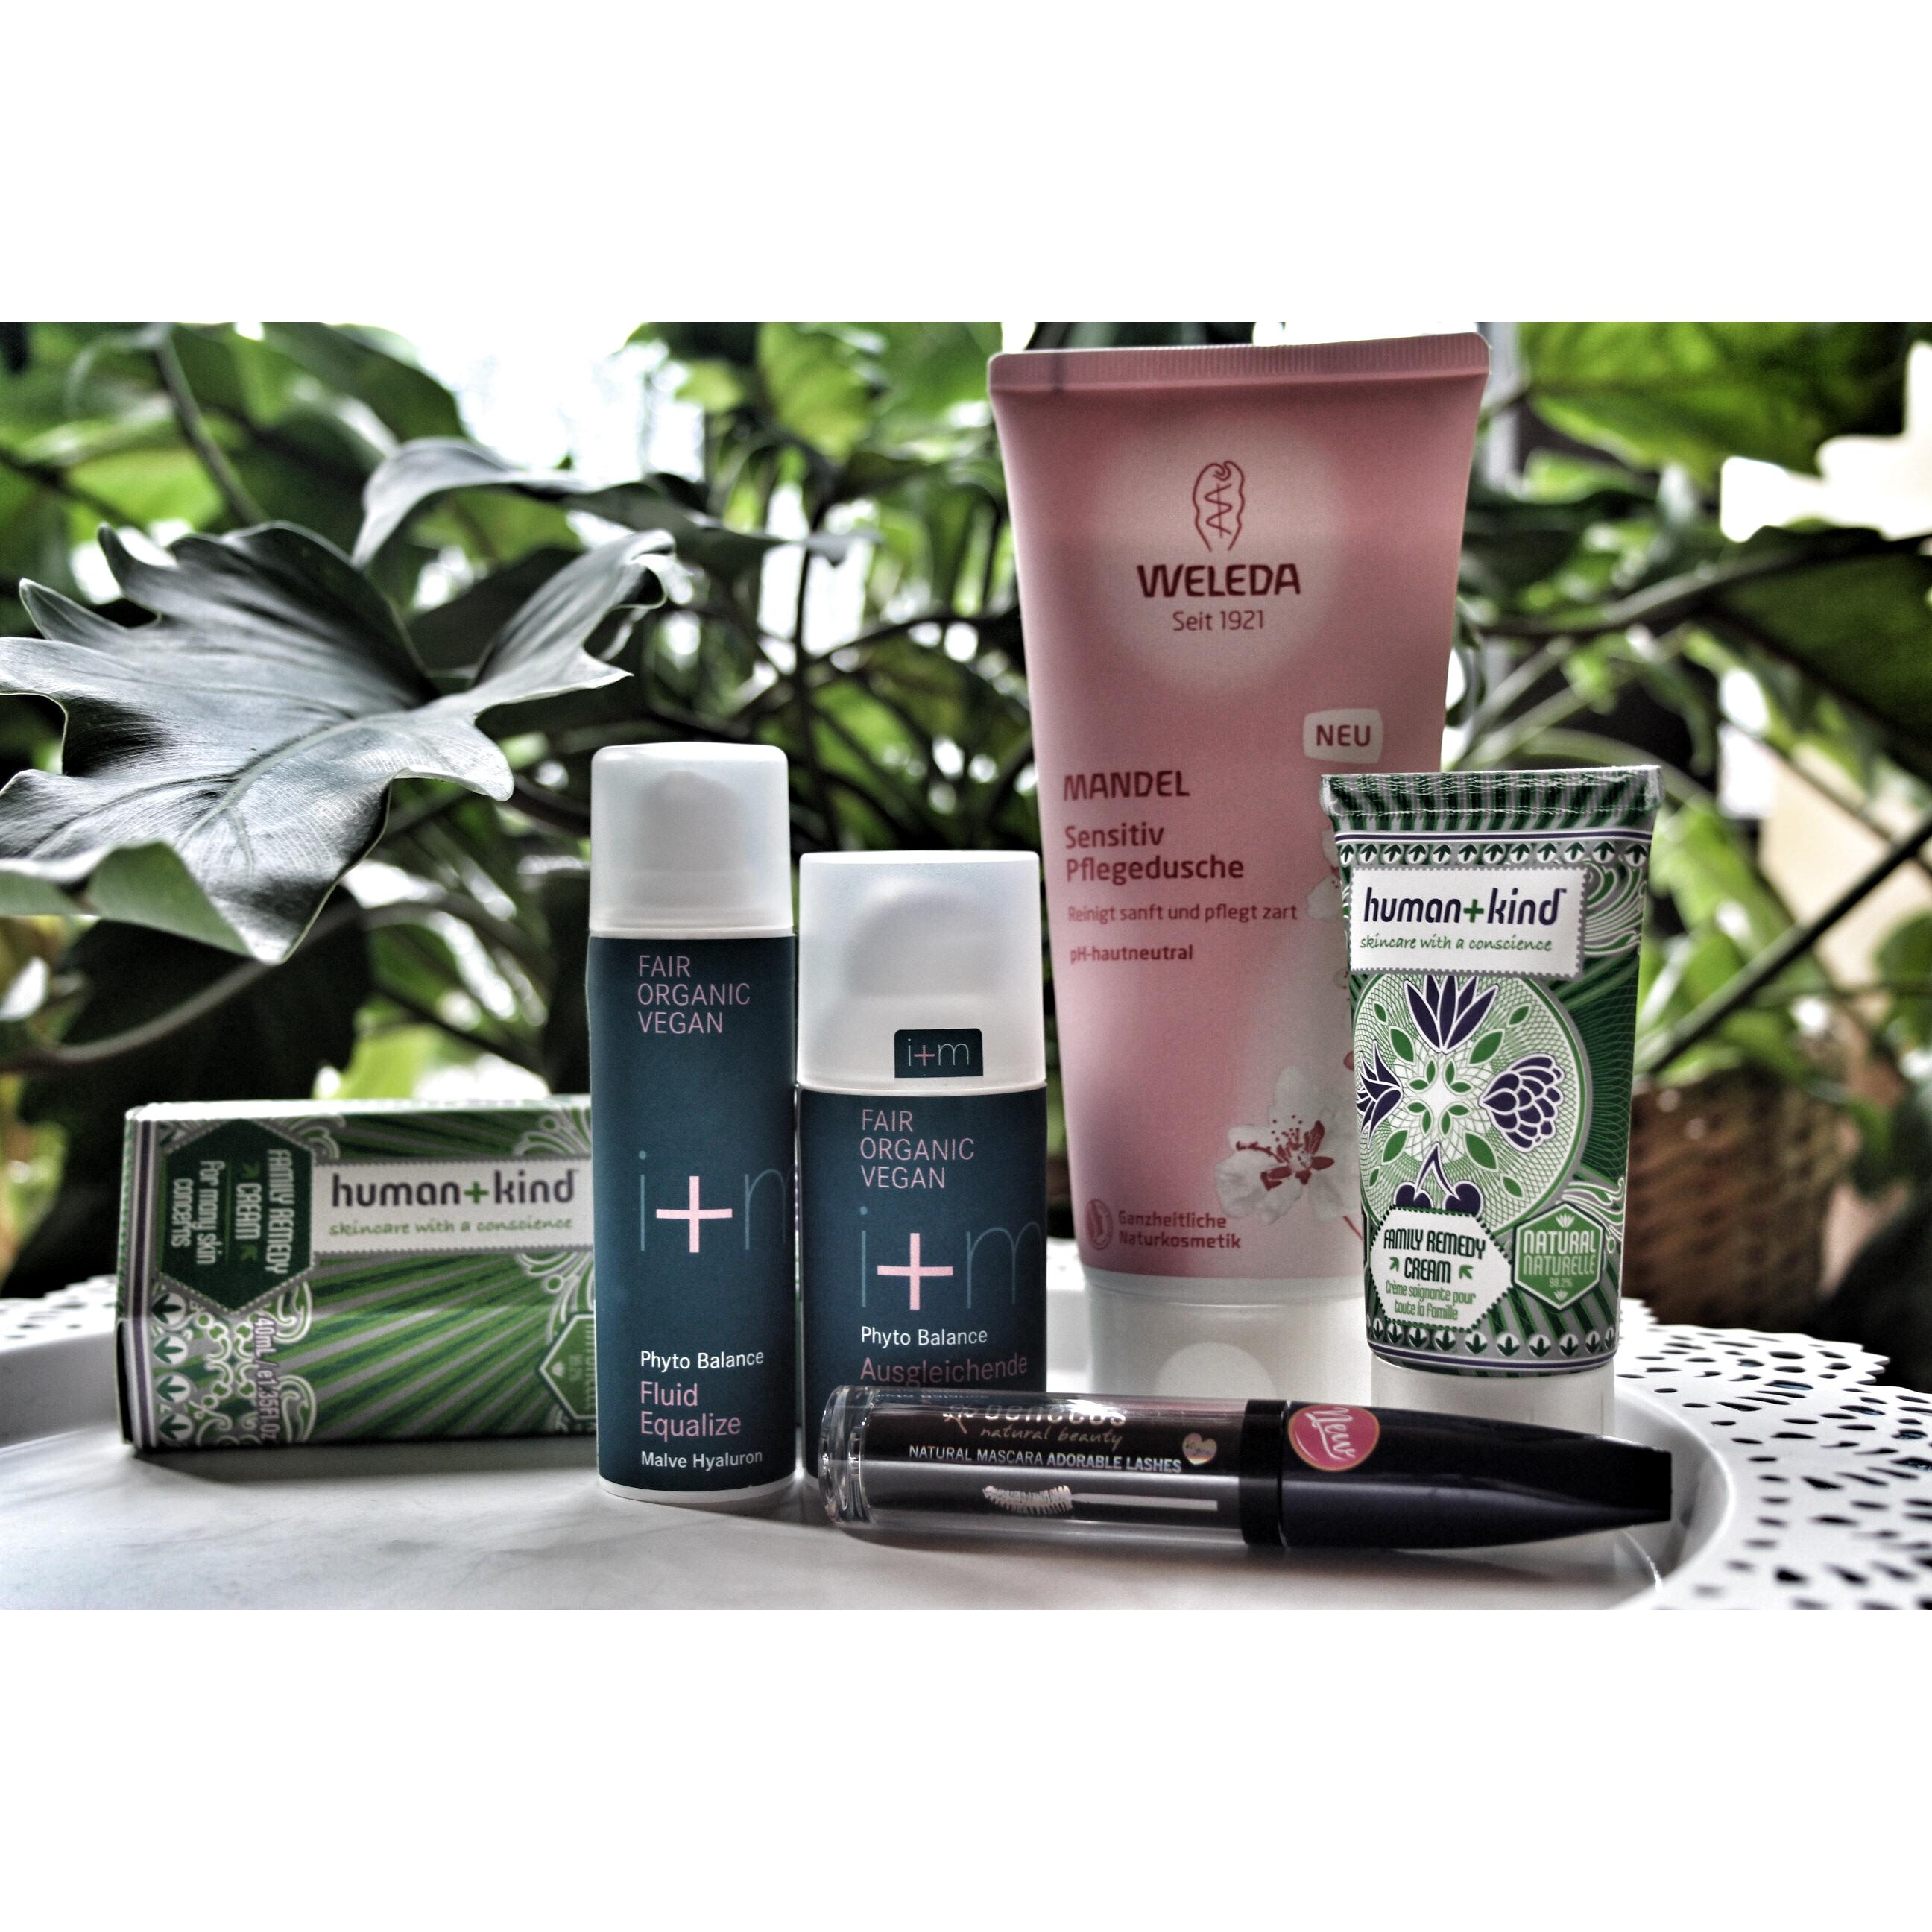 Monatsabo Kosmetikbox #Fairybox #Naturkosmetik #Boxenliebe #beauty #box #pflege